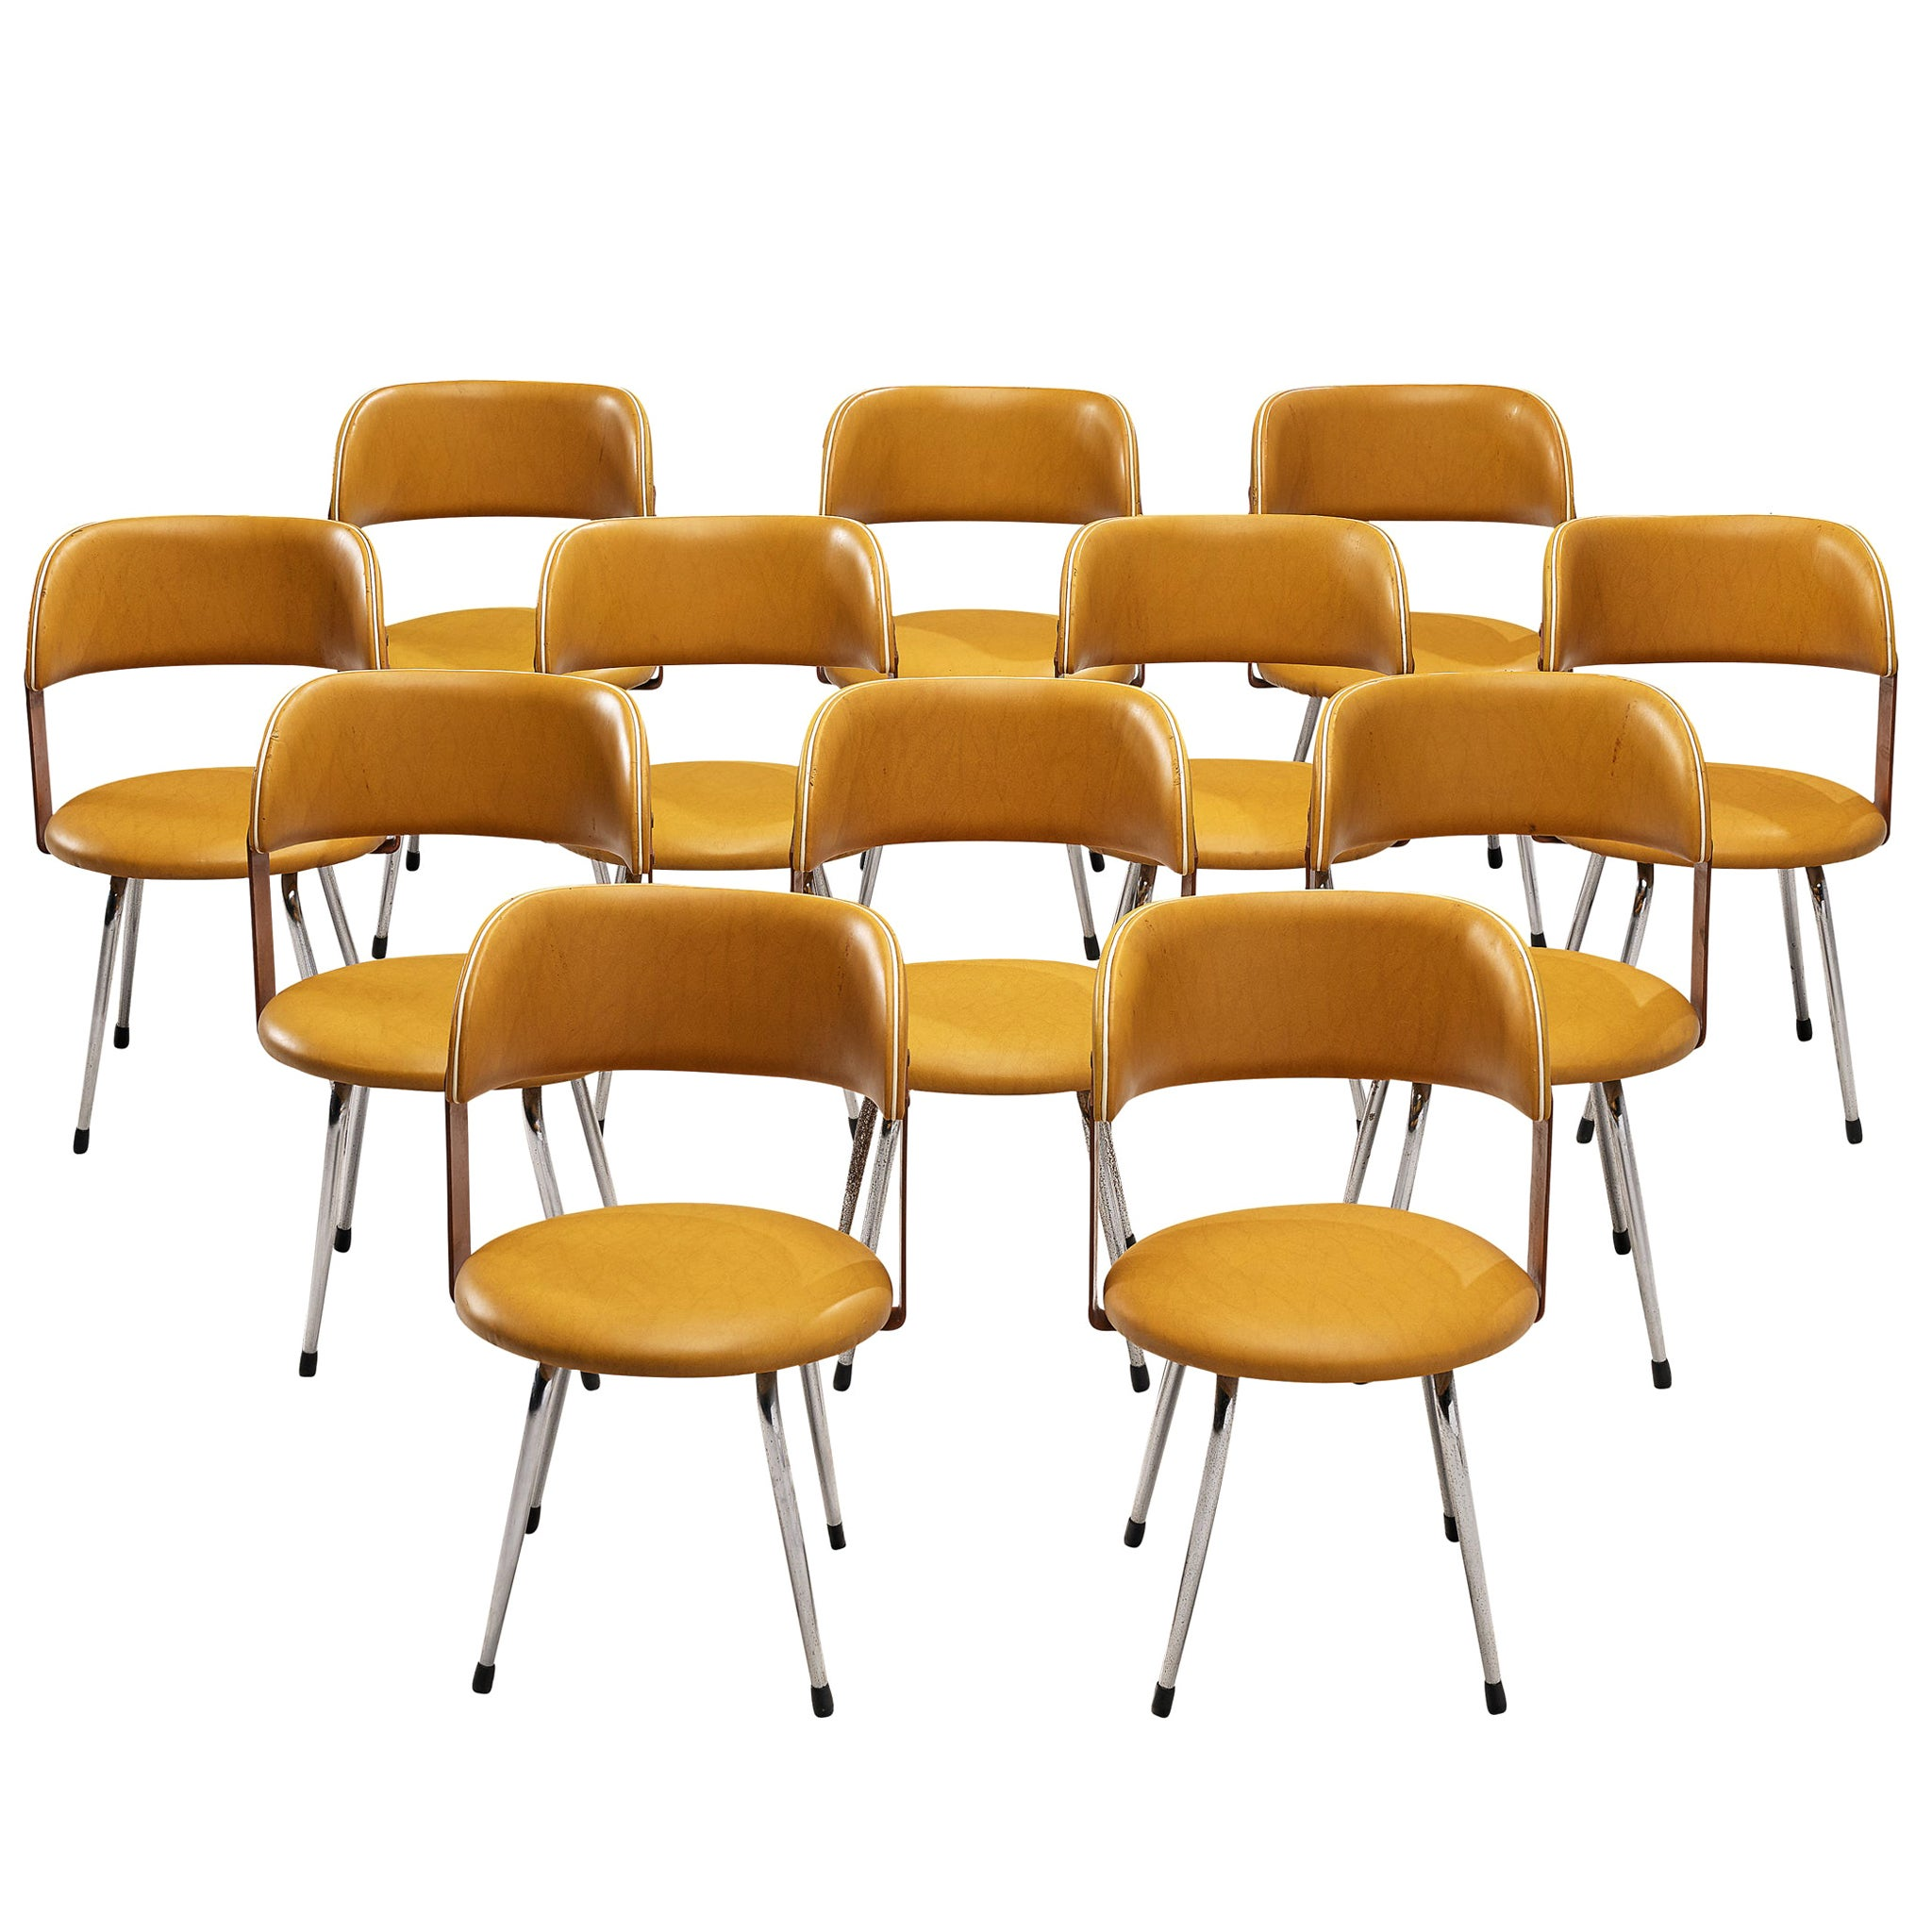 Large Set of 12 Italian Dining Chairs in Leatherette and Metal, 1970s